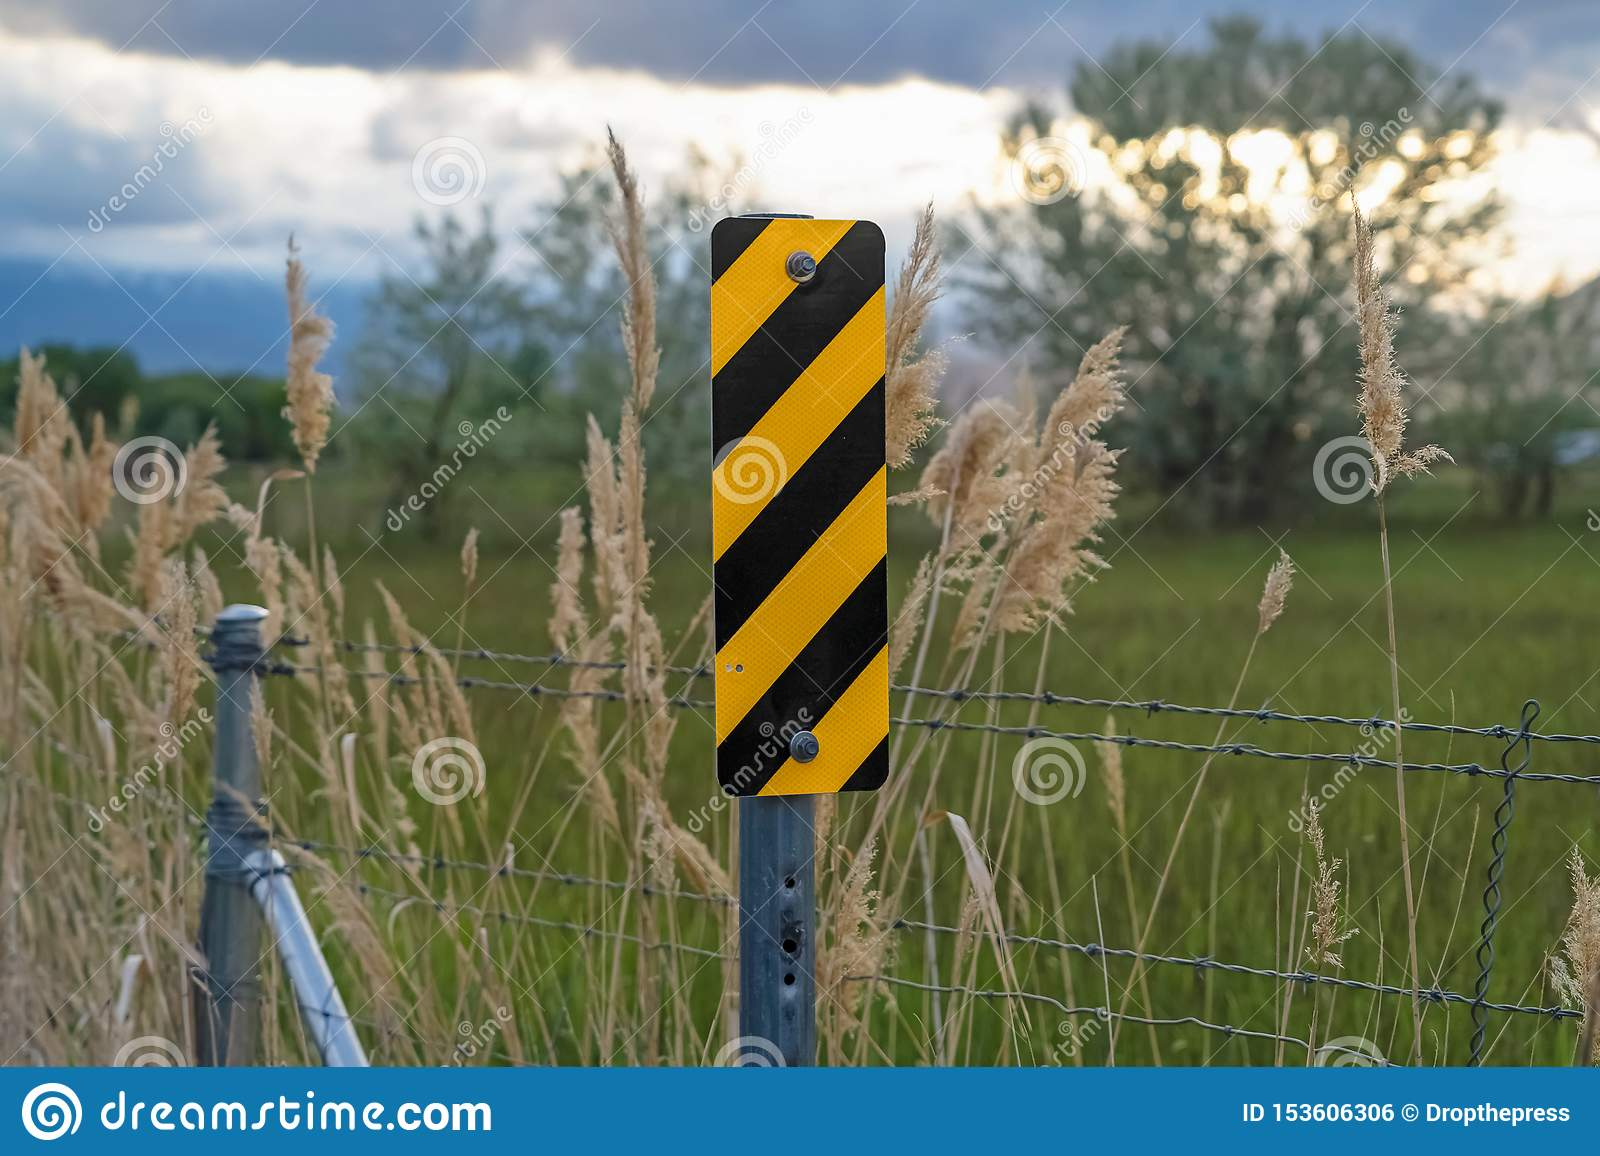 Close up of black and yellow diagonal stripes road sign beside barbed wire fence